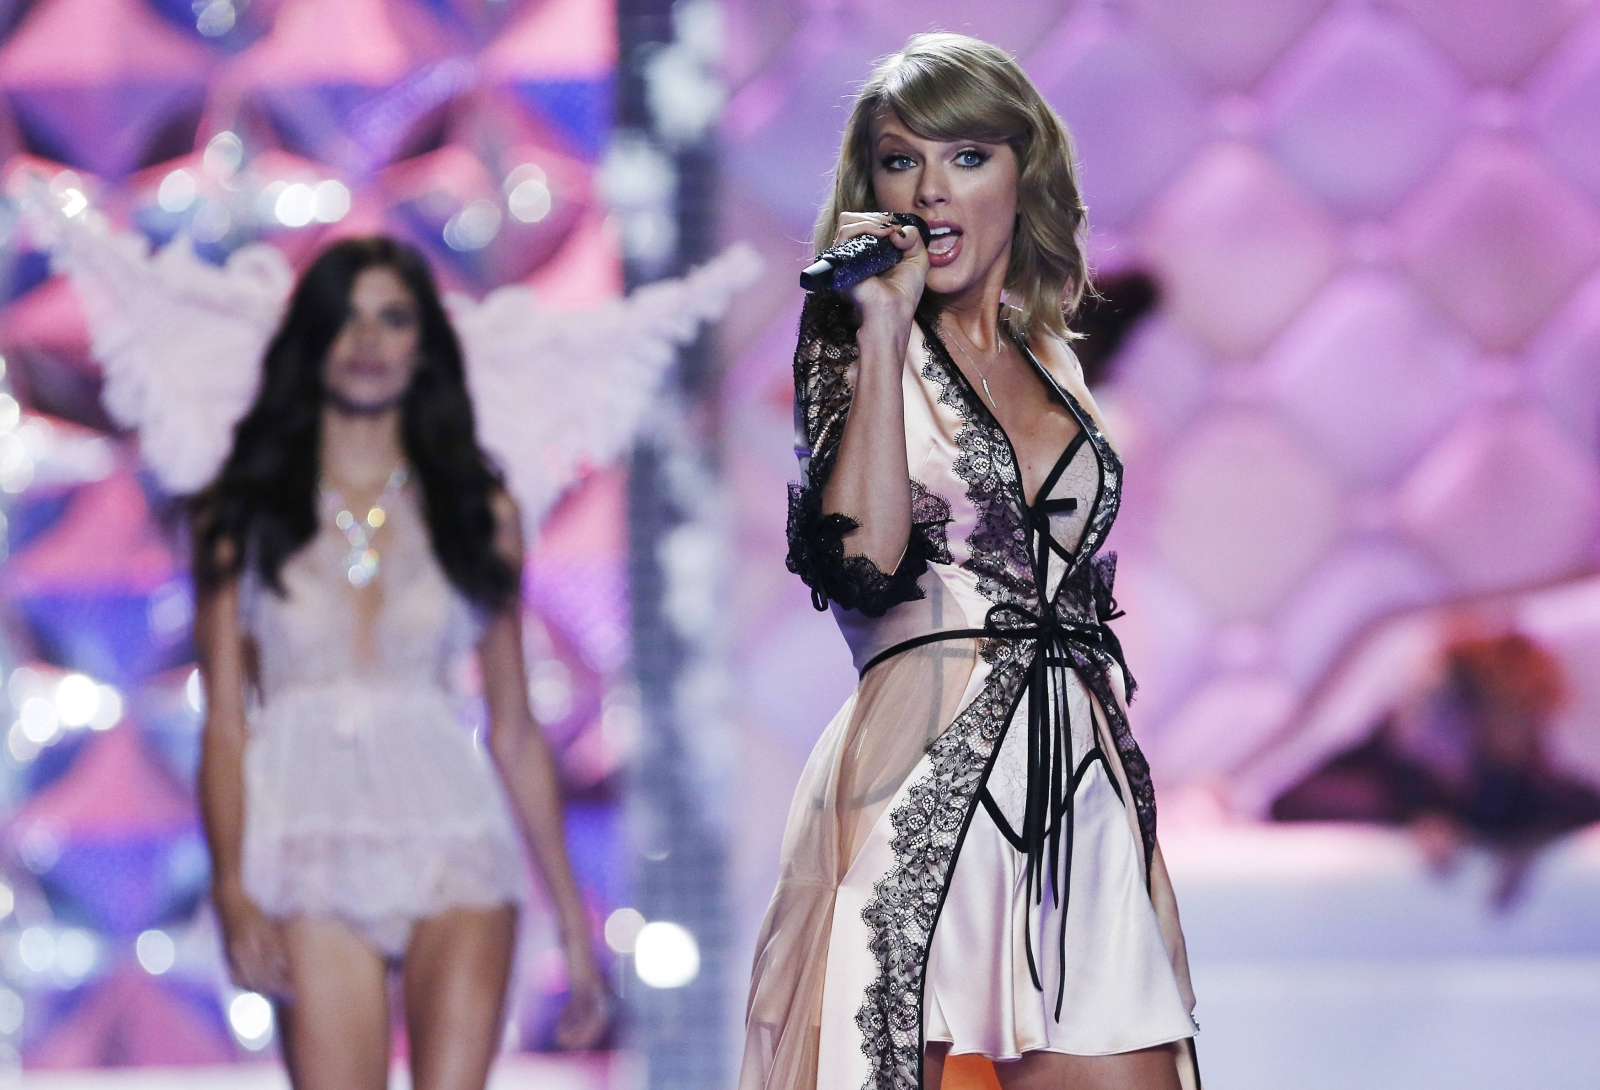 Taylor Swift and Ariana Grande help Angels light up Victoria's Secret fashion show